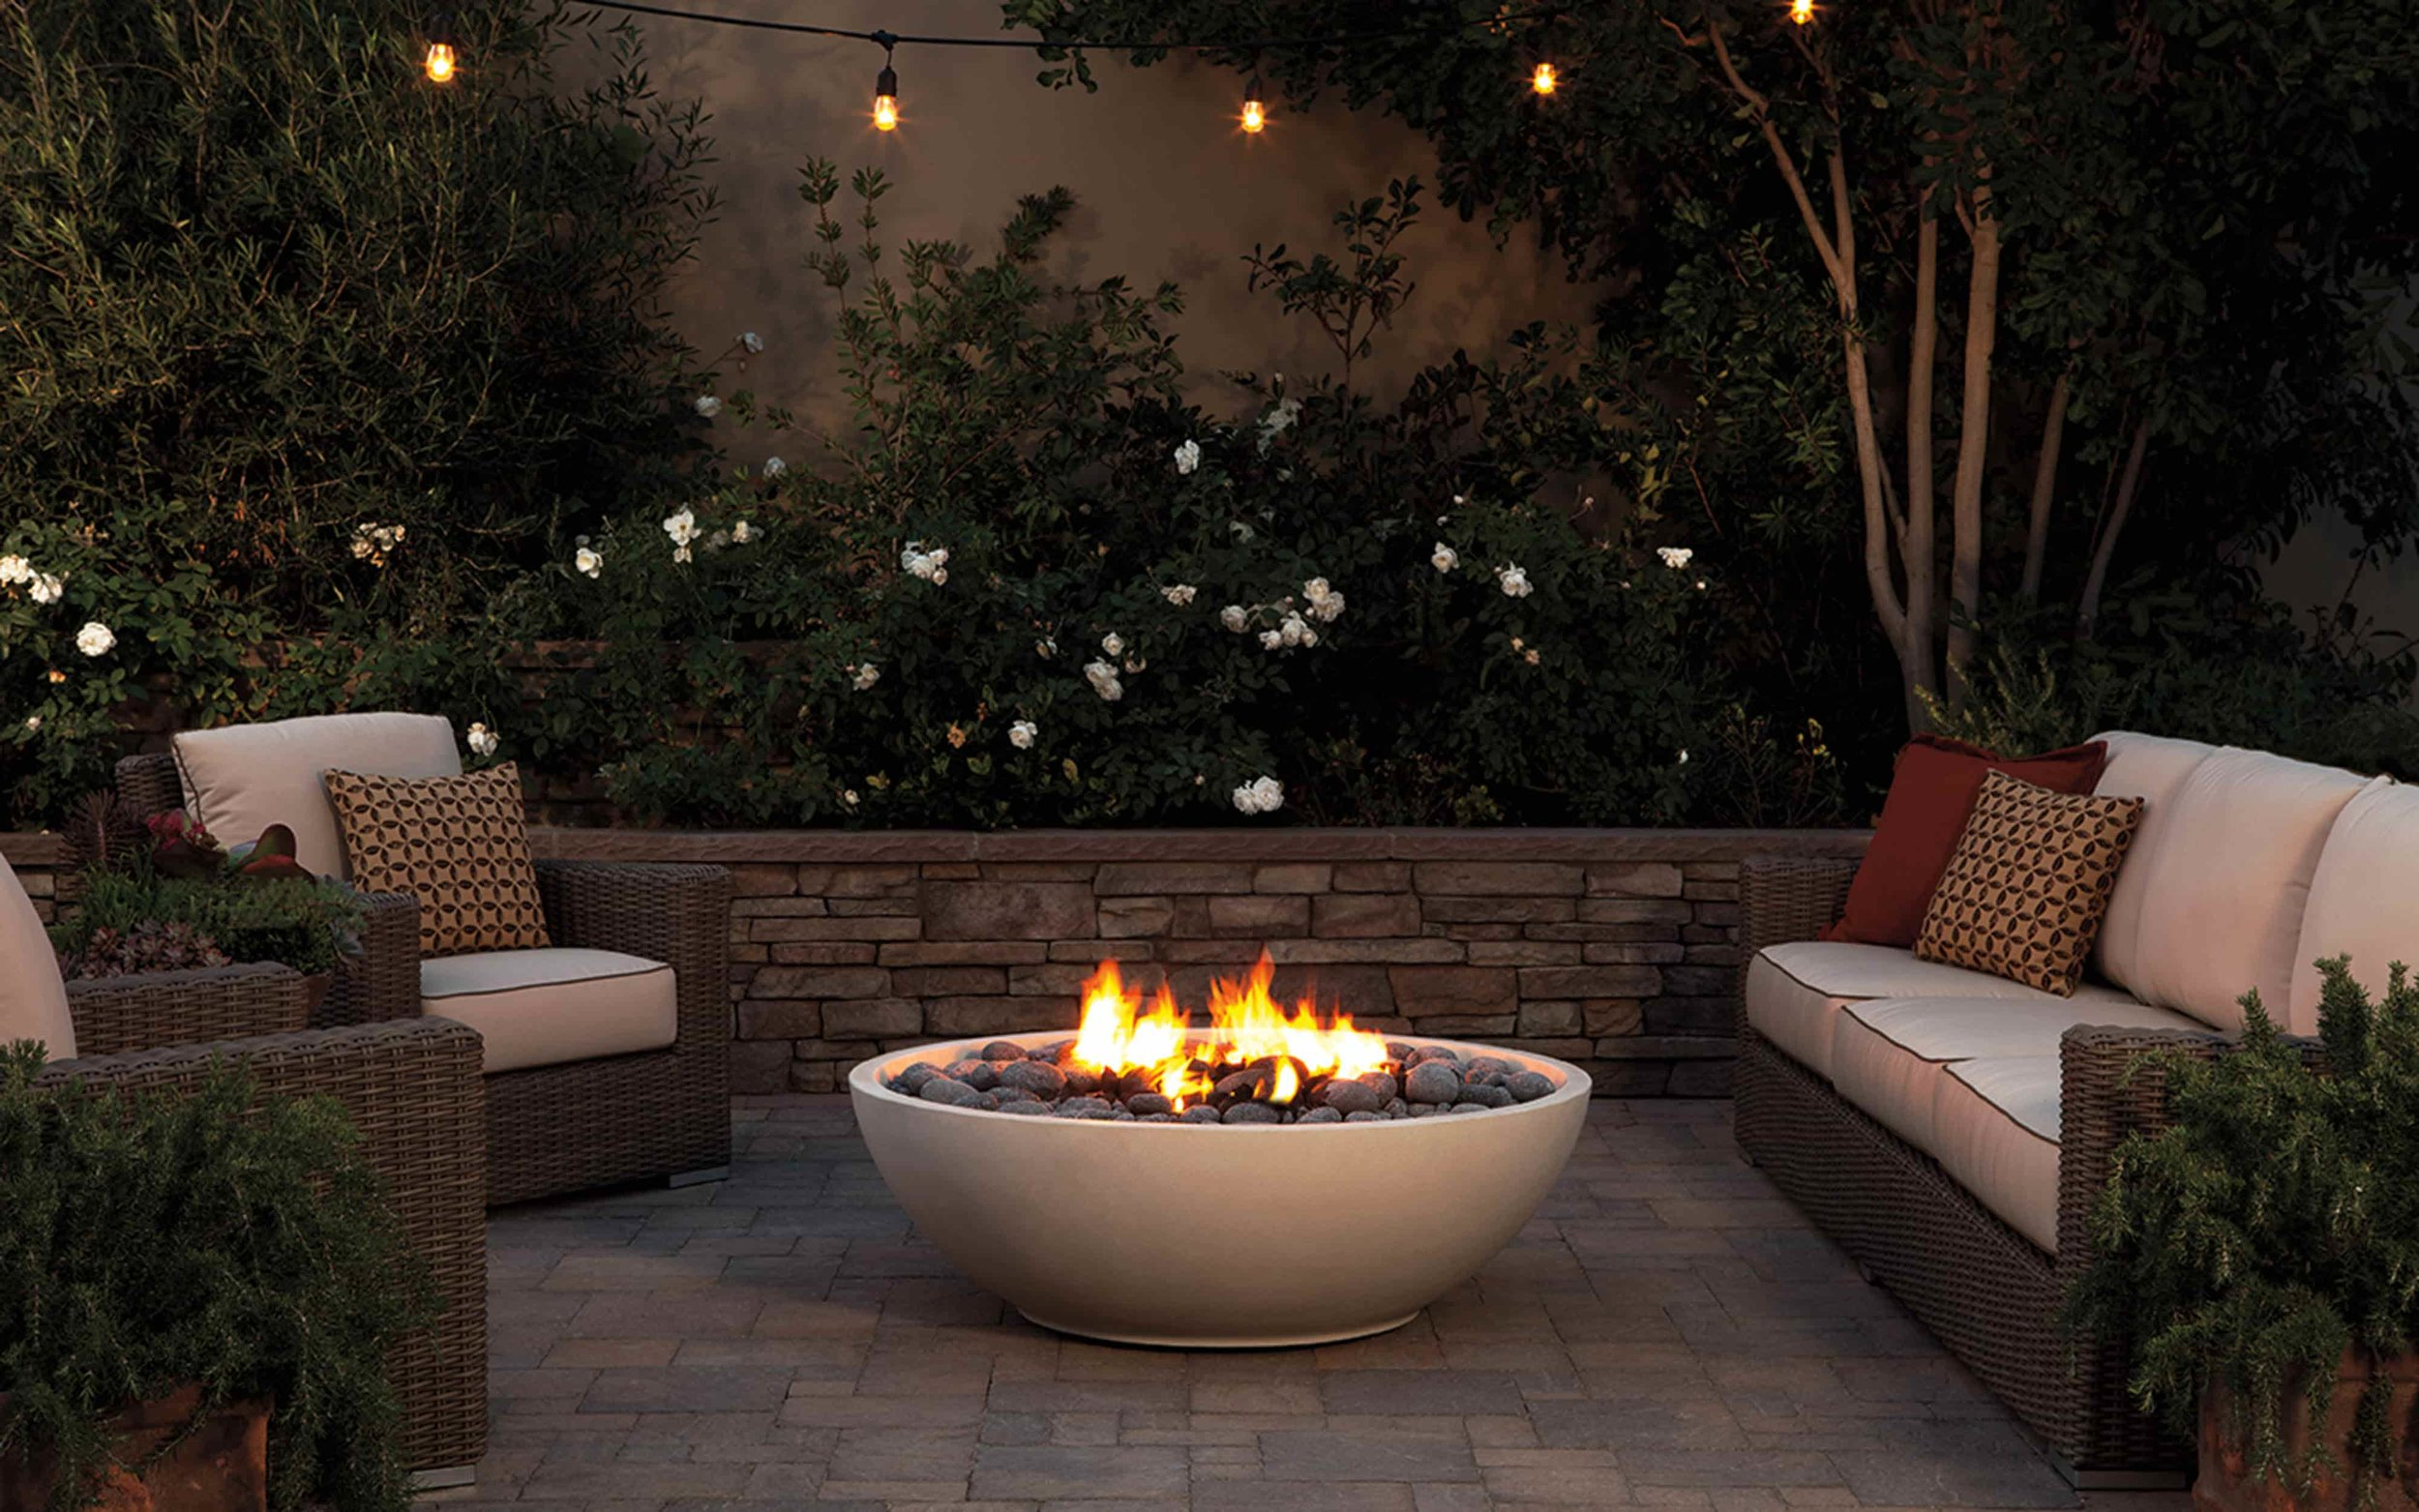 Eldorado Stone Fire Bowls - Dress up your outdoor living space with a fire bowl from Eldorado Stone. The options are endless!